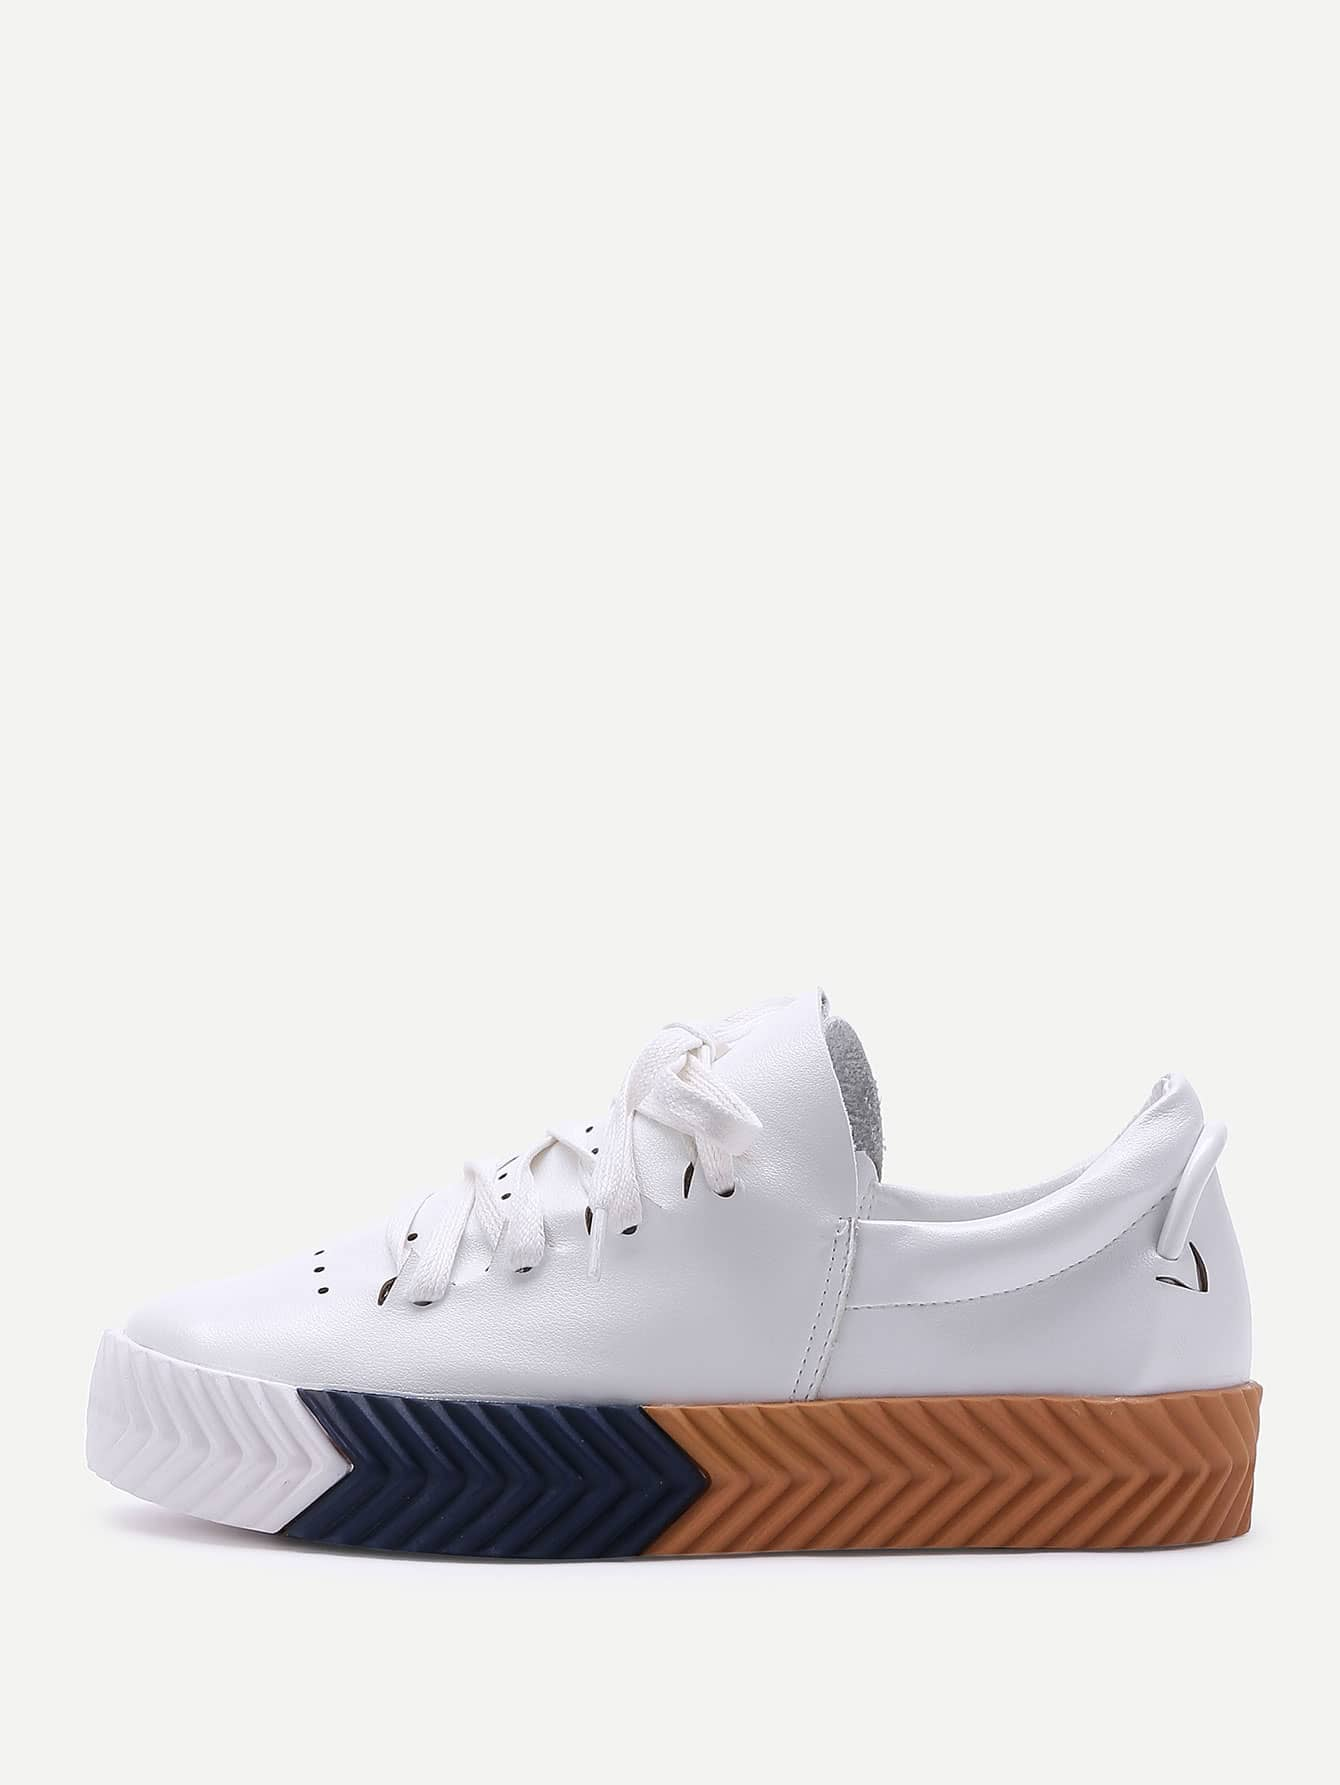 Lace Up Low Top PU Sneakers Y9y5stm S